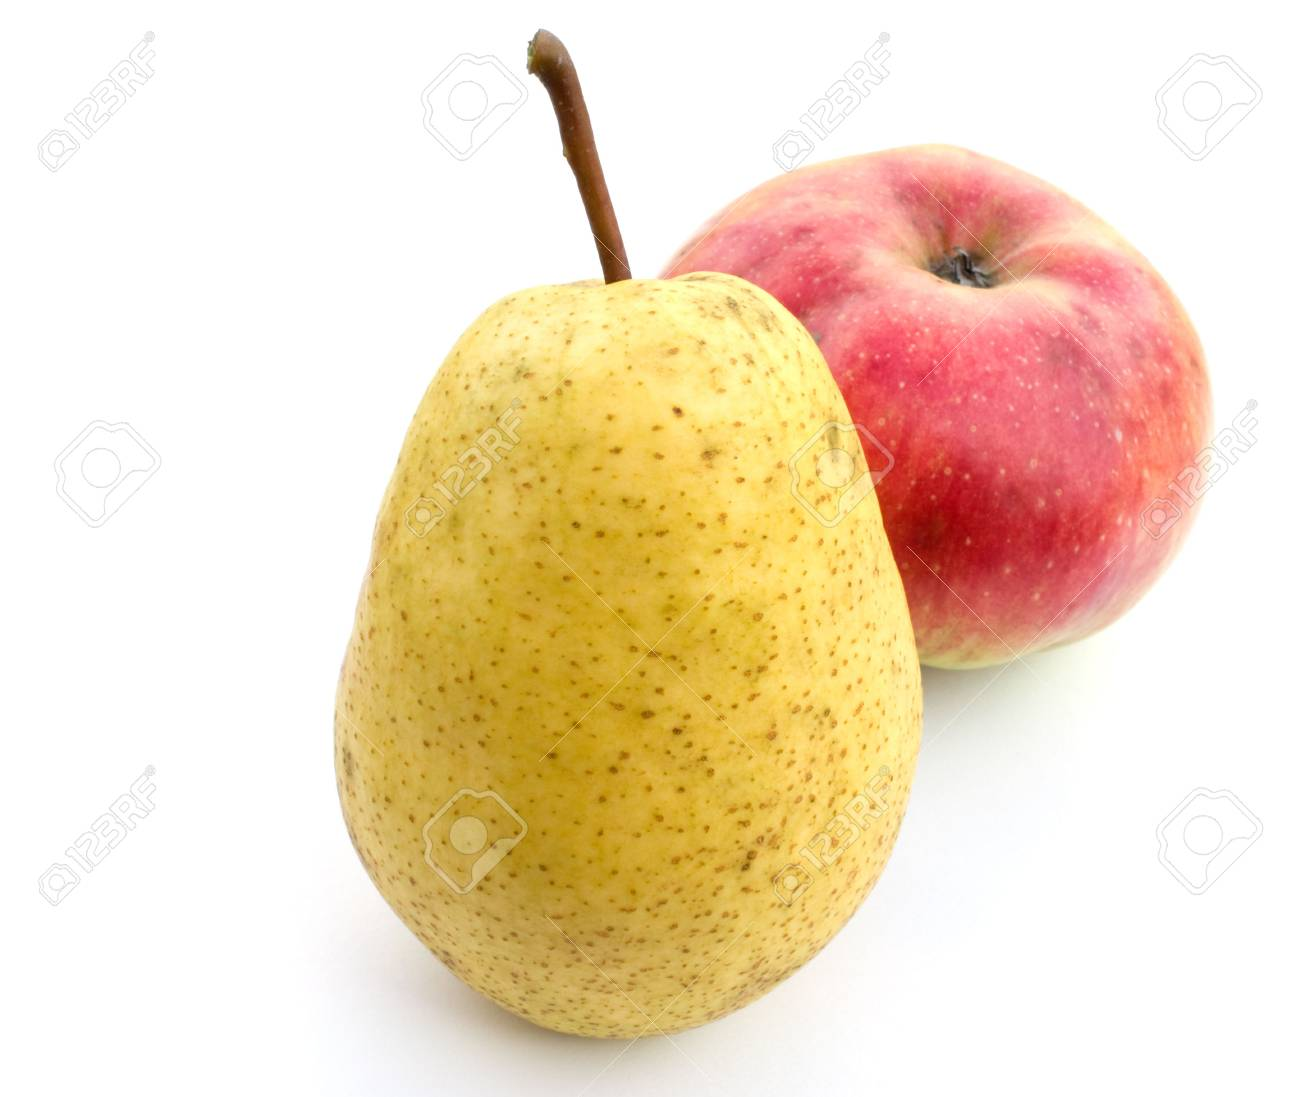 Yellow pear and red apple on a white background. Stock Photo - 5639589